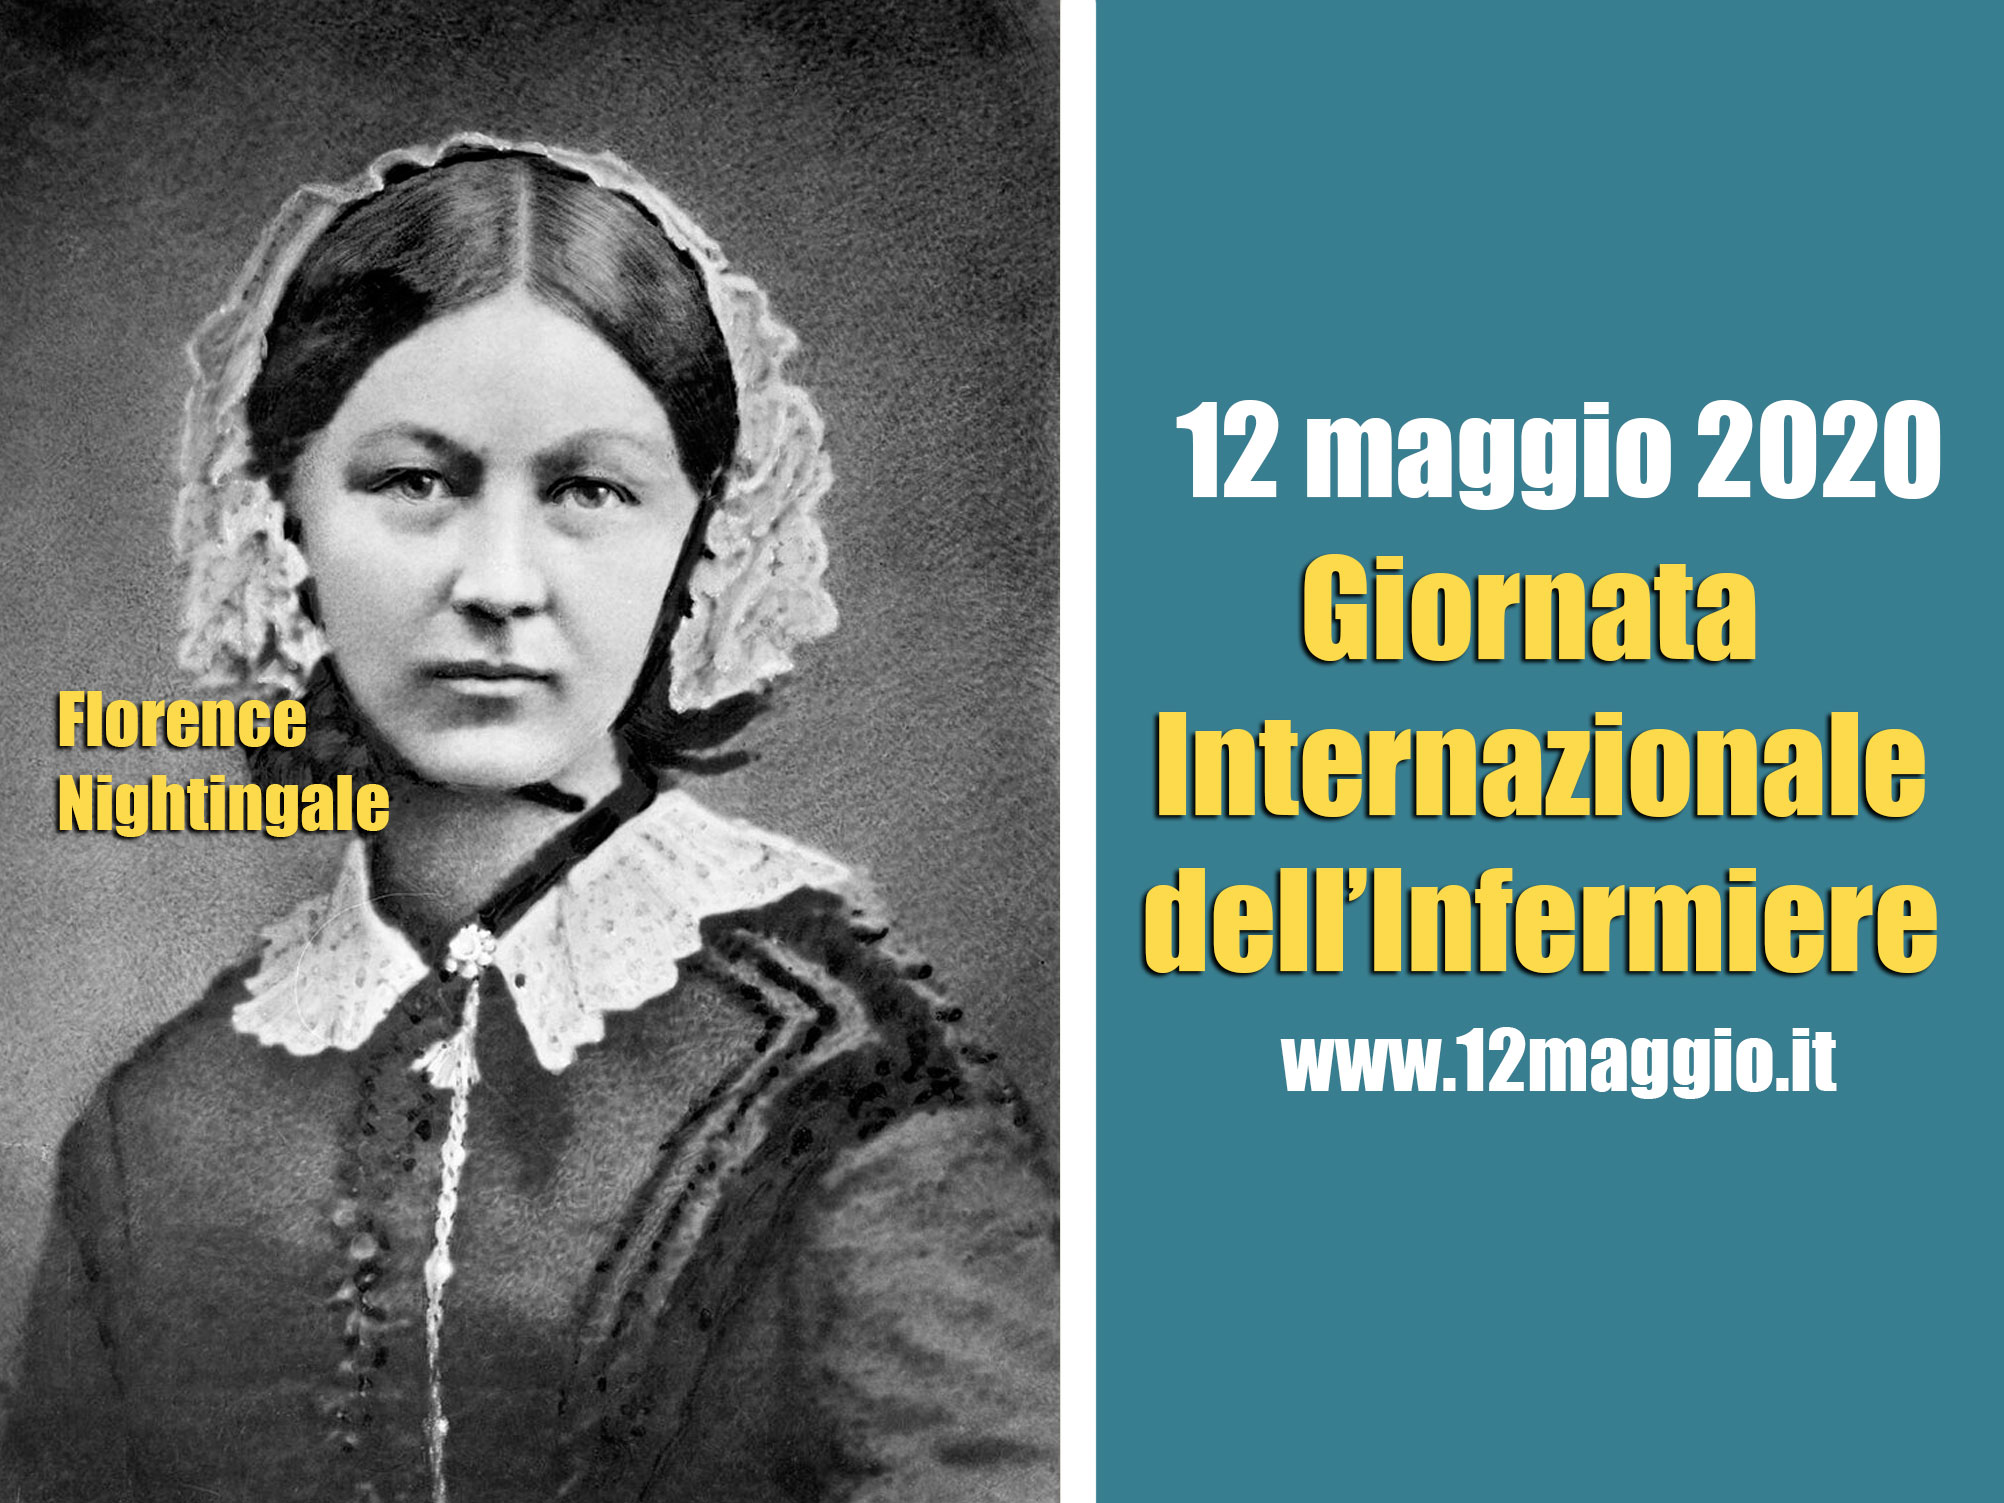 Giornata Internazionale dell'Infermiere